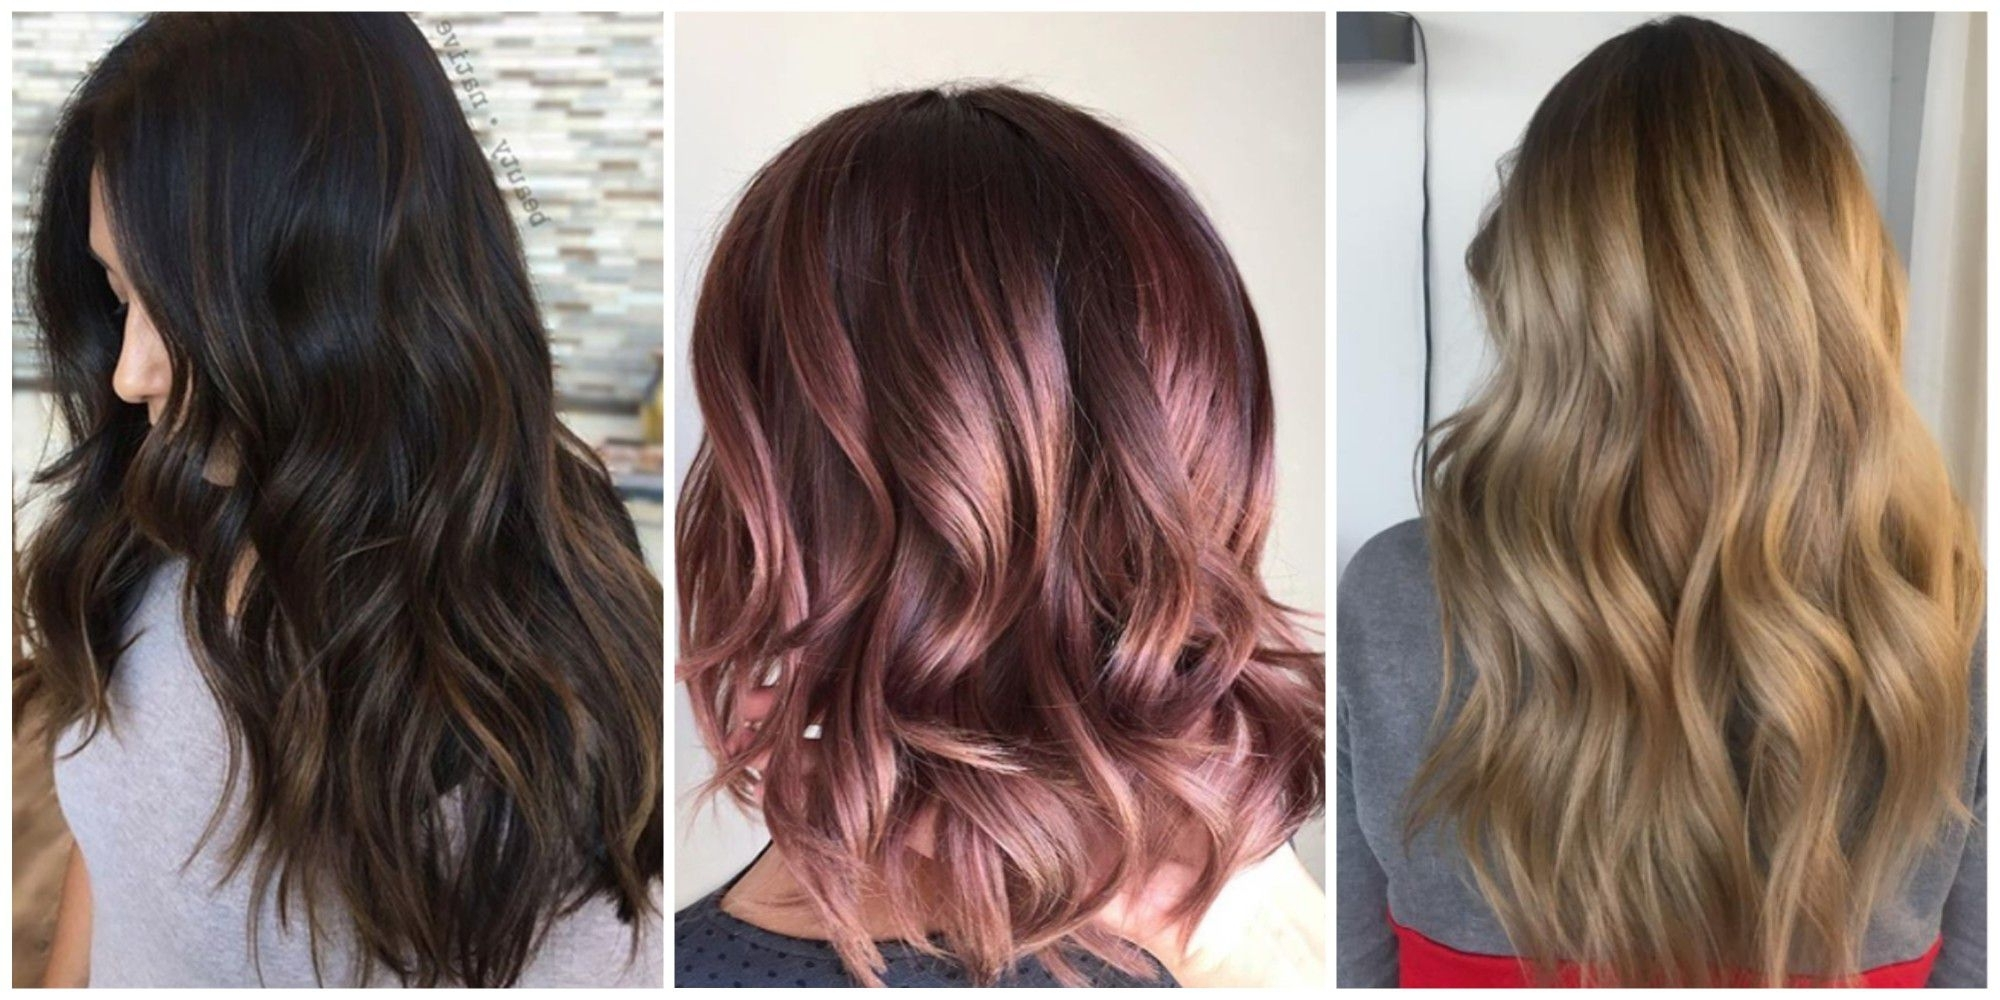 15 Hair Color Ideas And Styles For 2018 – Best Hair Colors And Products Throughout Most Current Multi Tonal Mid Length Blonde Hairstyles (View 5 of 20)